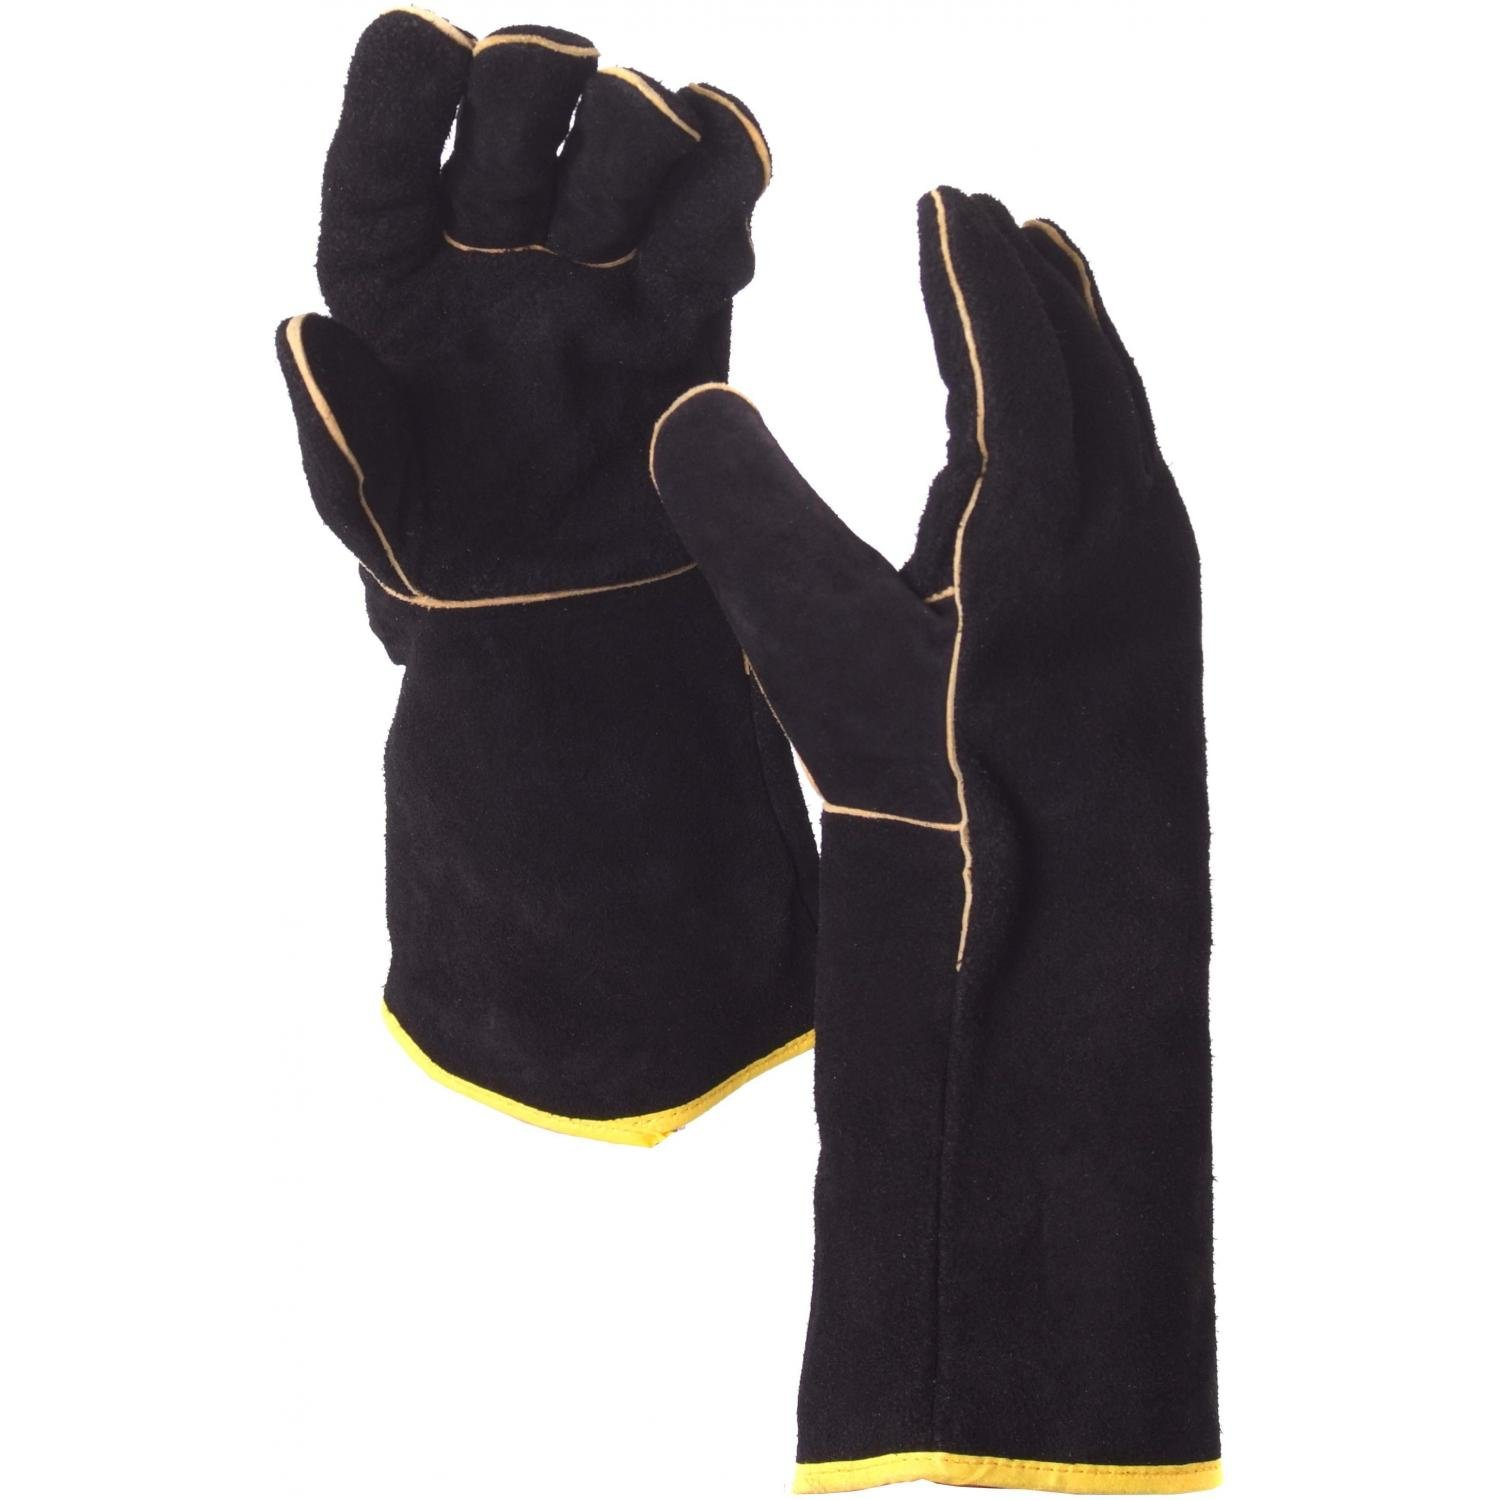 Leather work gloves ireland - Gallery Of Grillpro Black Leather Bbq Gloves